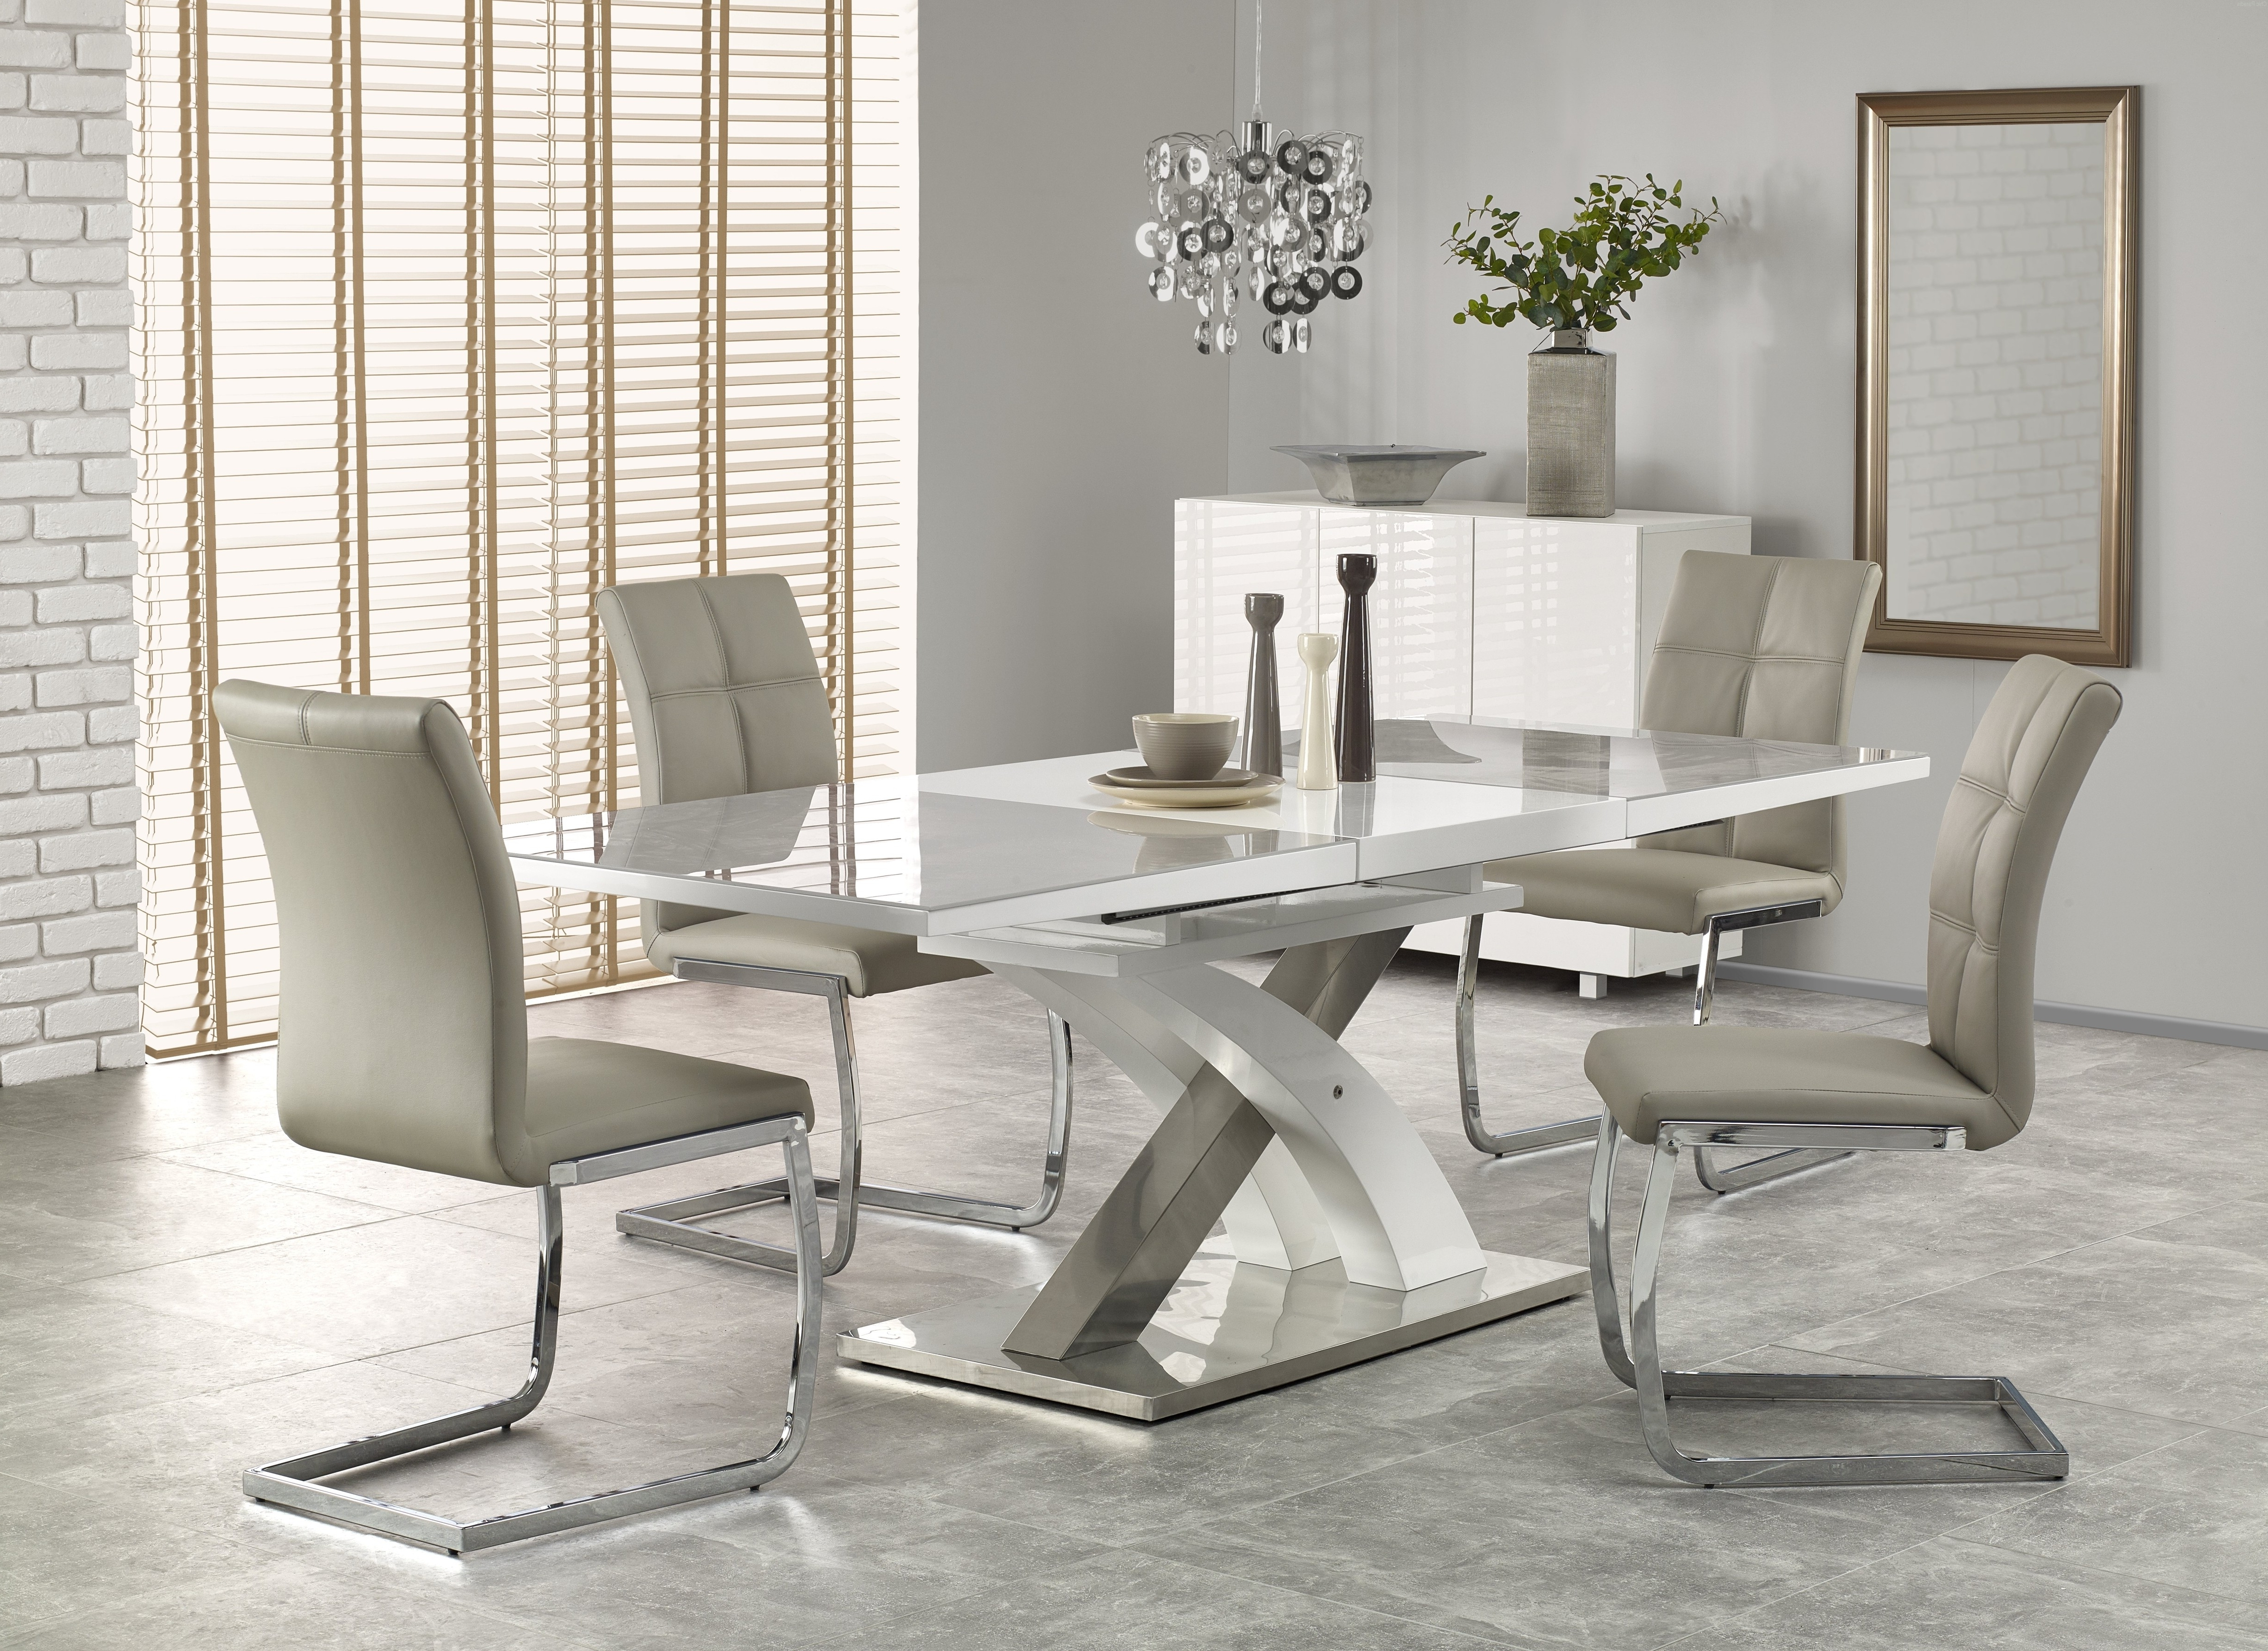 Most Popular Extending Marble Dining Tables Regarding Buy Harmony High Gloss White Grey Glass Extendable Dining Table (View 8 of 25)